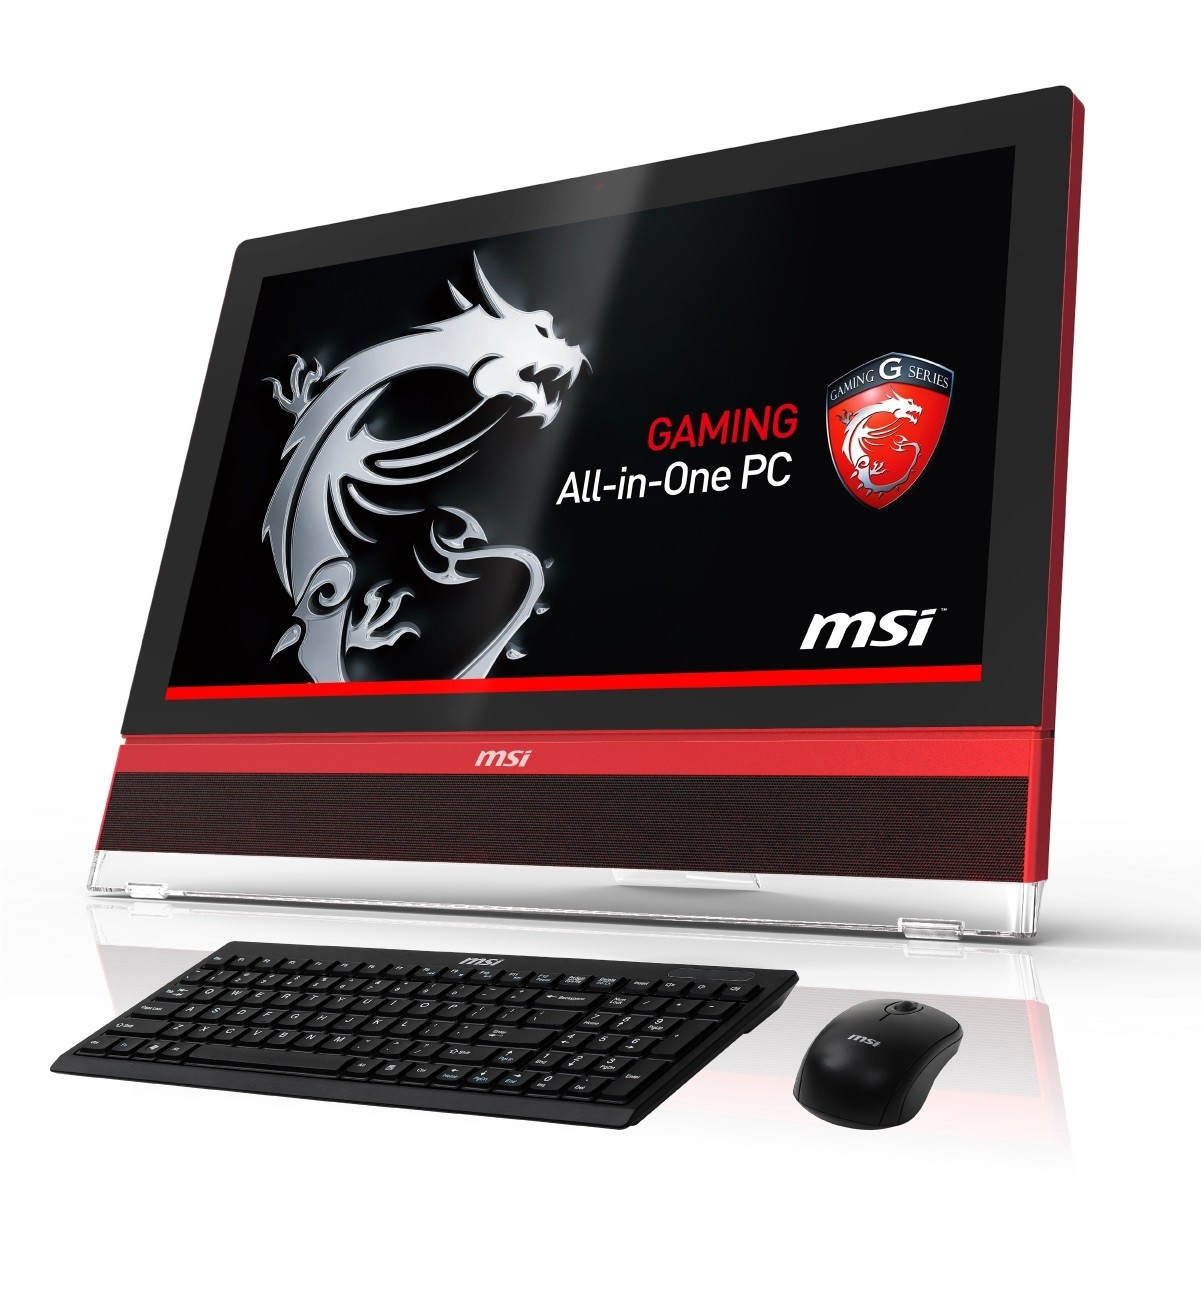 "Моноблок MSI AG270 2QC 3K-008RU 27"" Core i7-4720HQ 2.6GHz, 8Gb, HDD 1Tb (9S6-AF1911-008)"